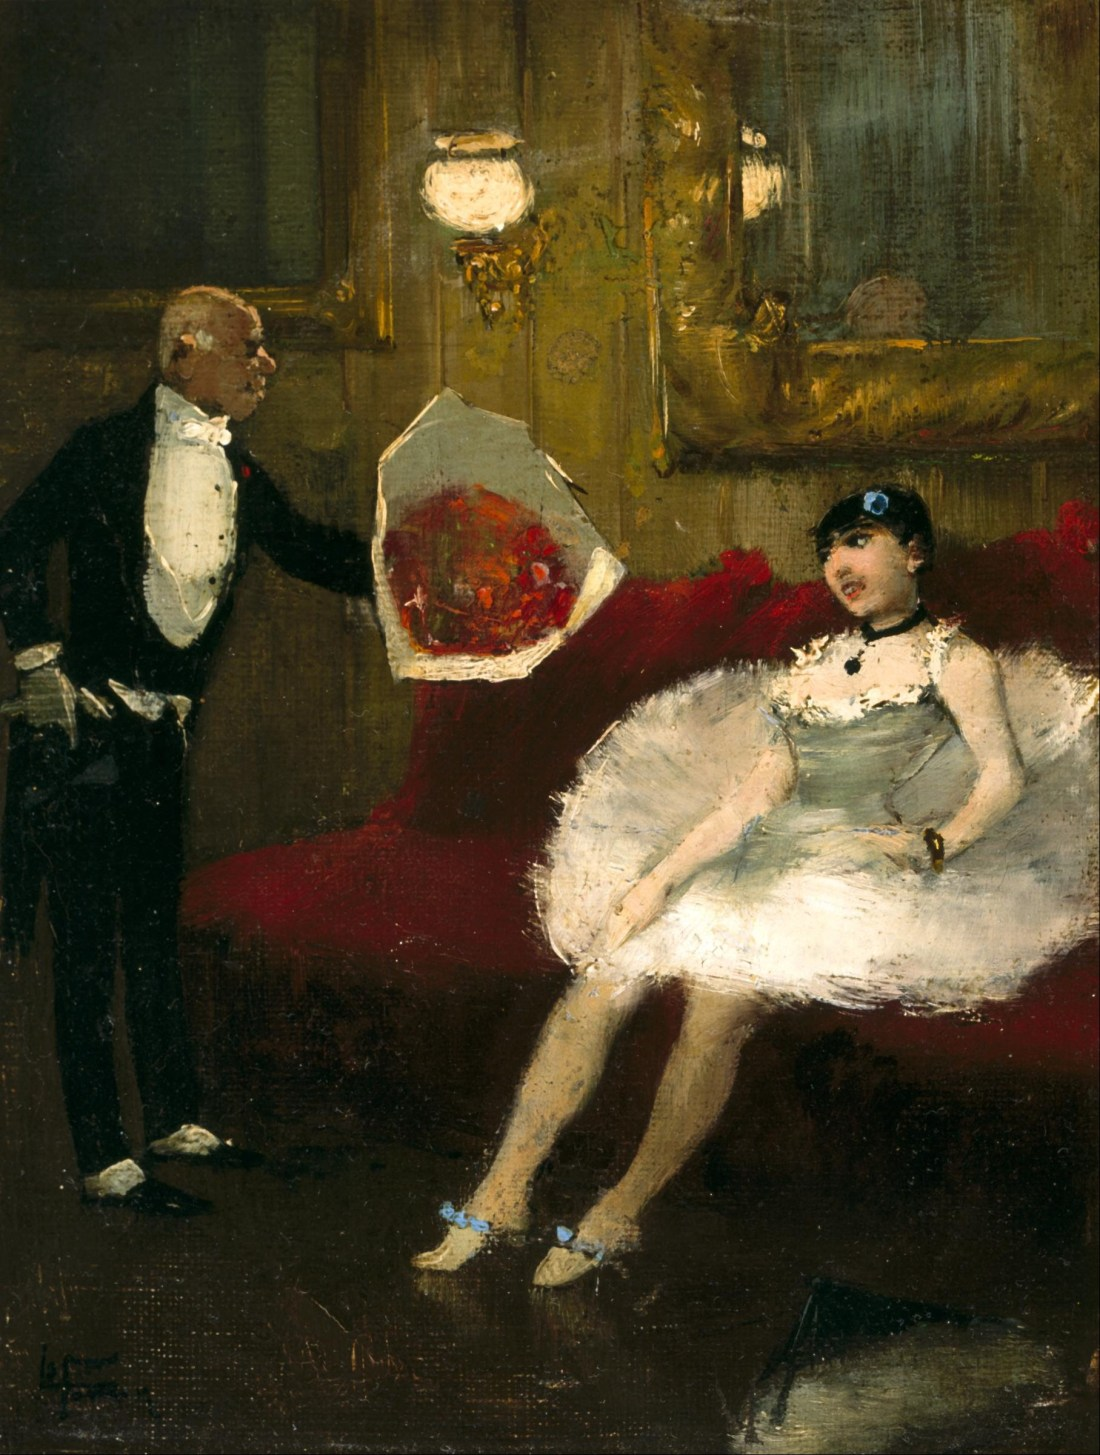 Jean-Louis_Forain_-_The_Admirer_-_Google_Art_Project